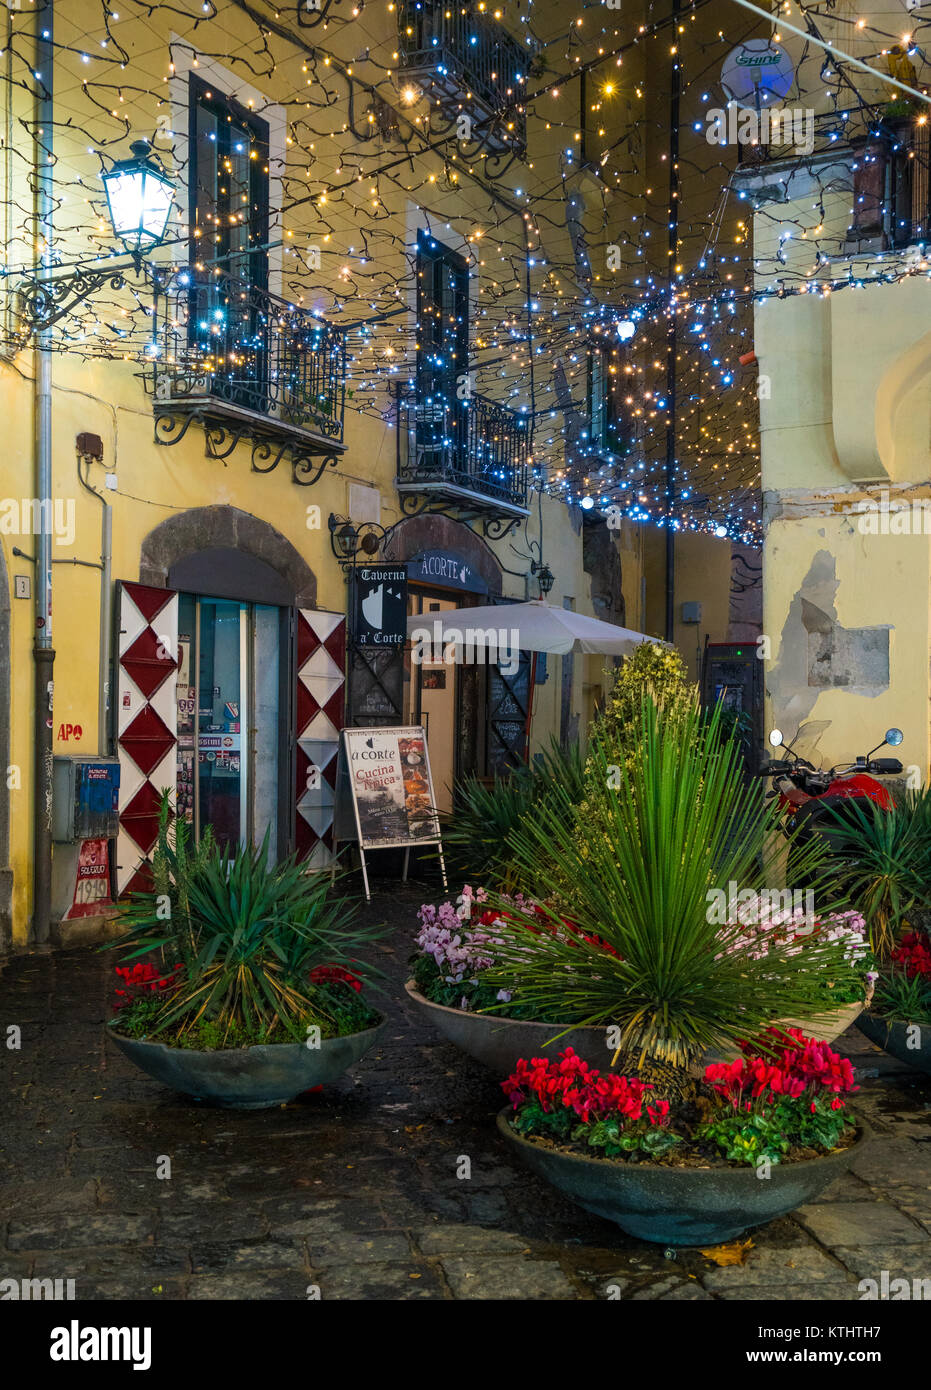 """The amazing """"Luci d'Artista"""" (artist lights) in Salerno during Christmas time, Campania, Italy. Stock Photo"""